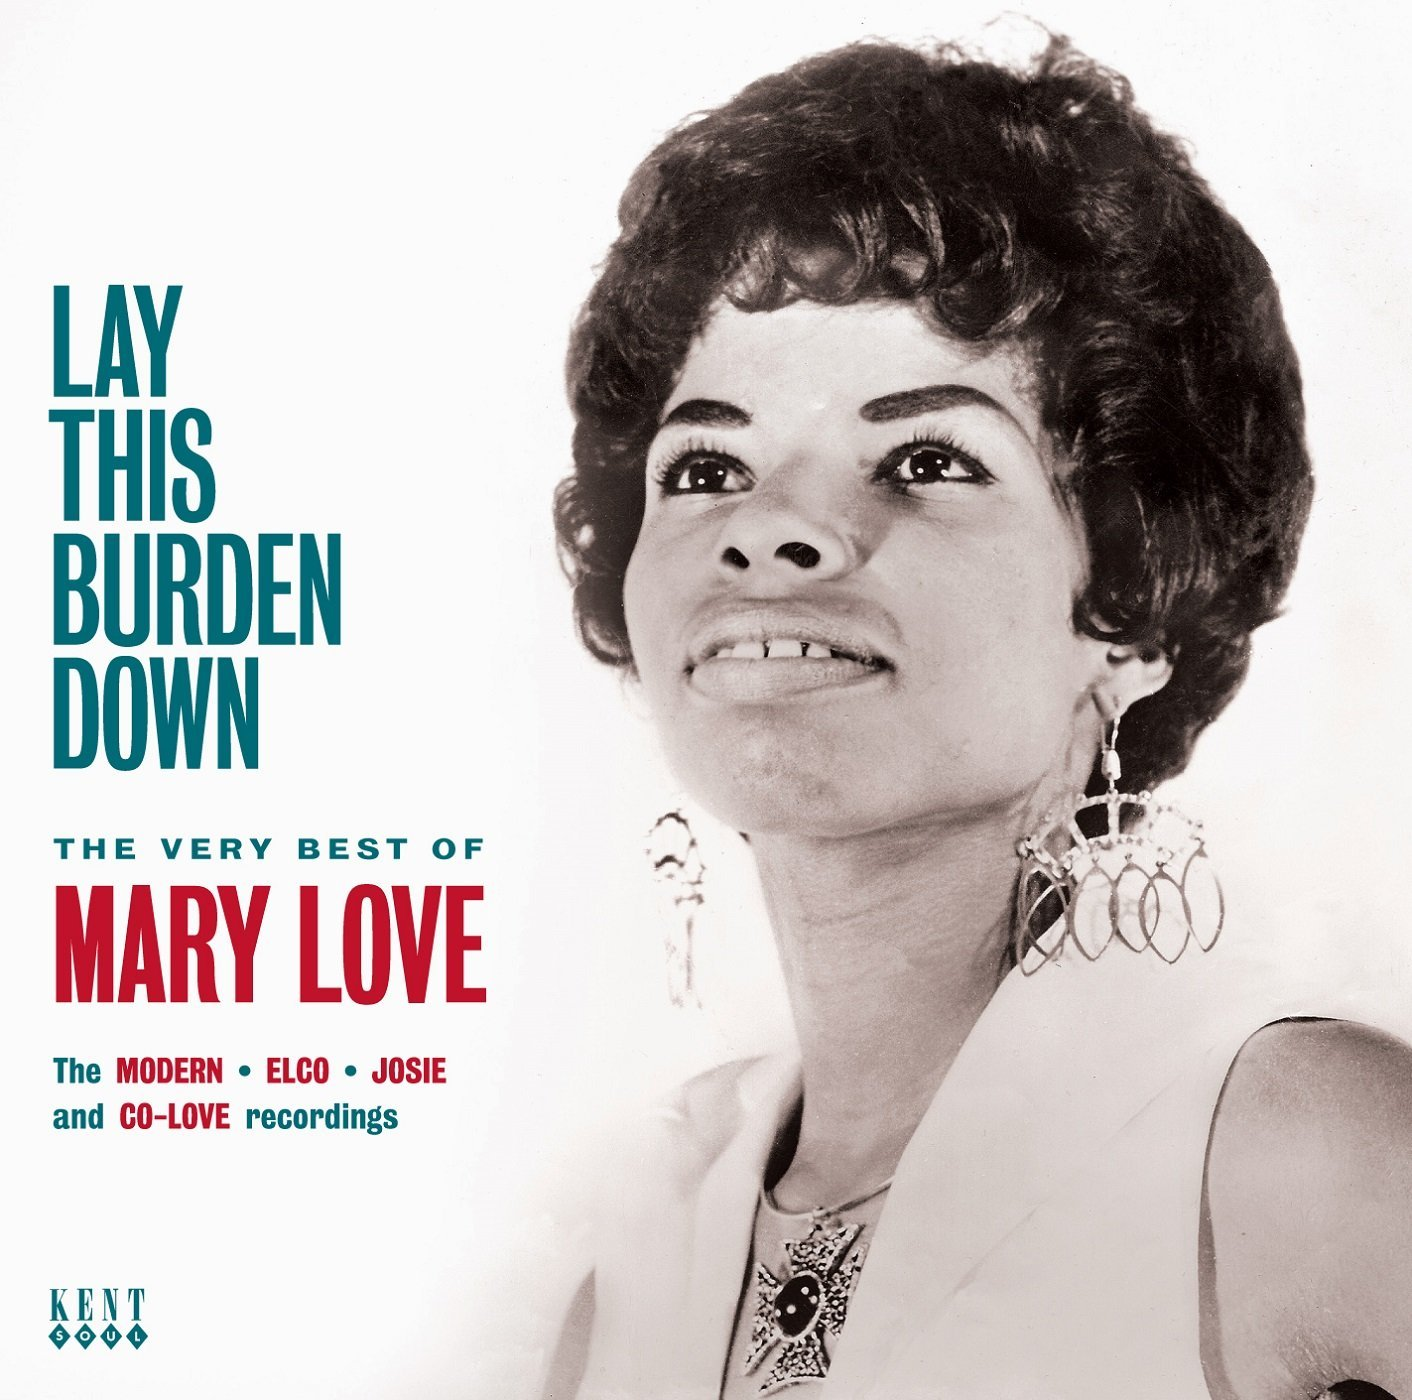 Mary Love – Lay This Burden Down – The Very Best Of CD (Kent)